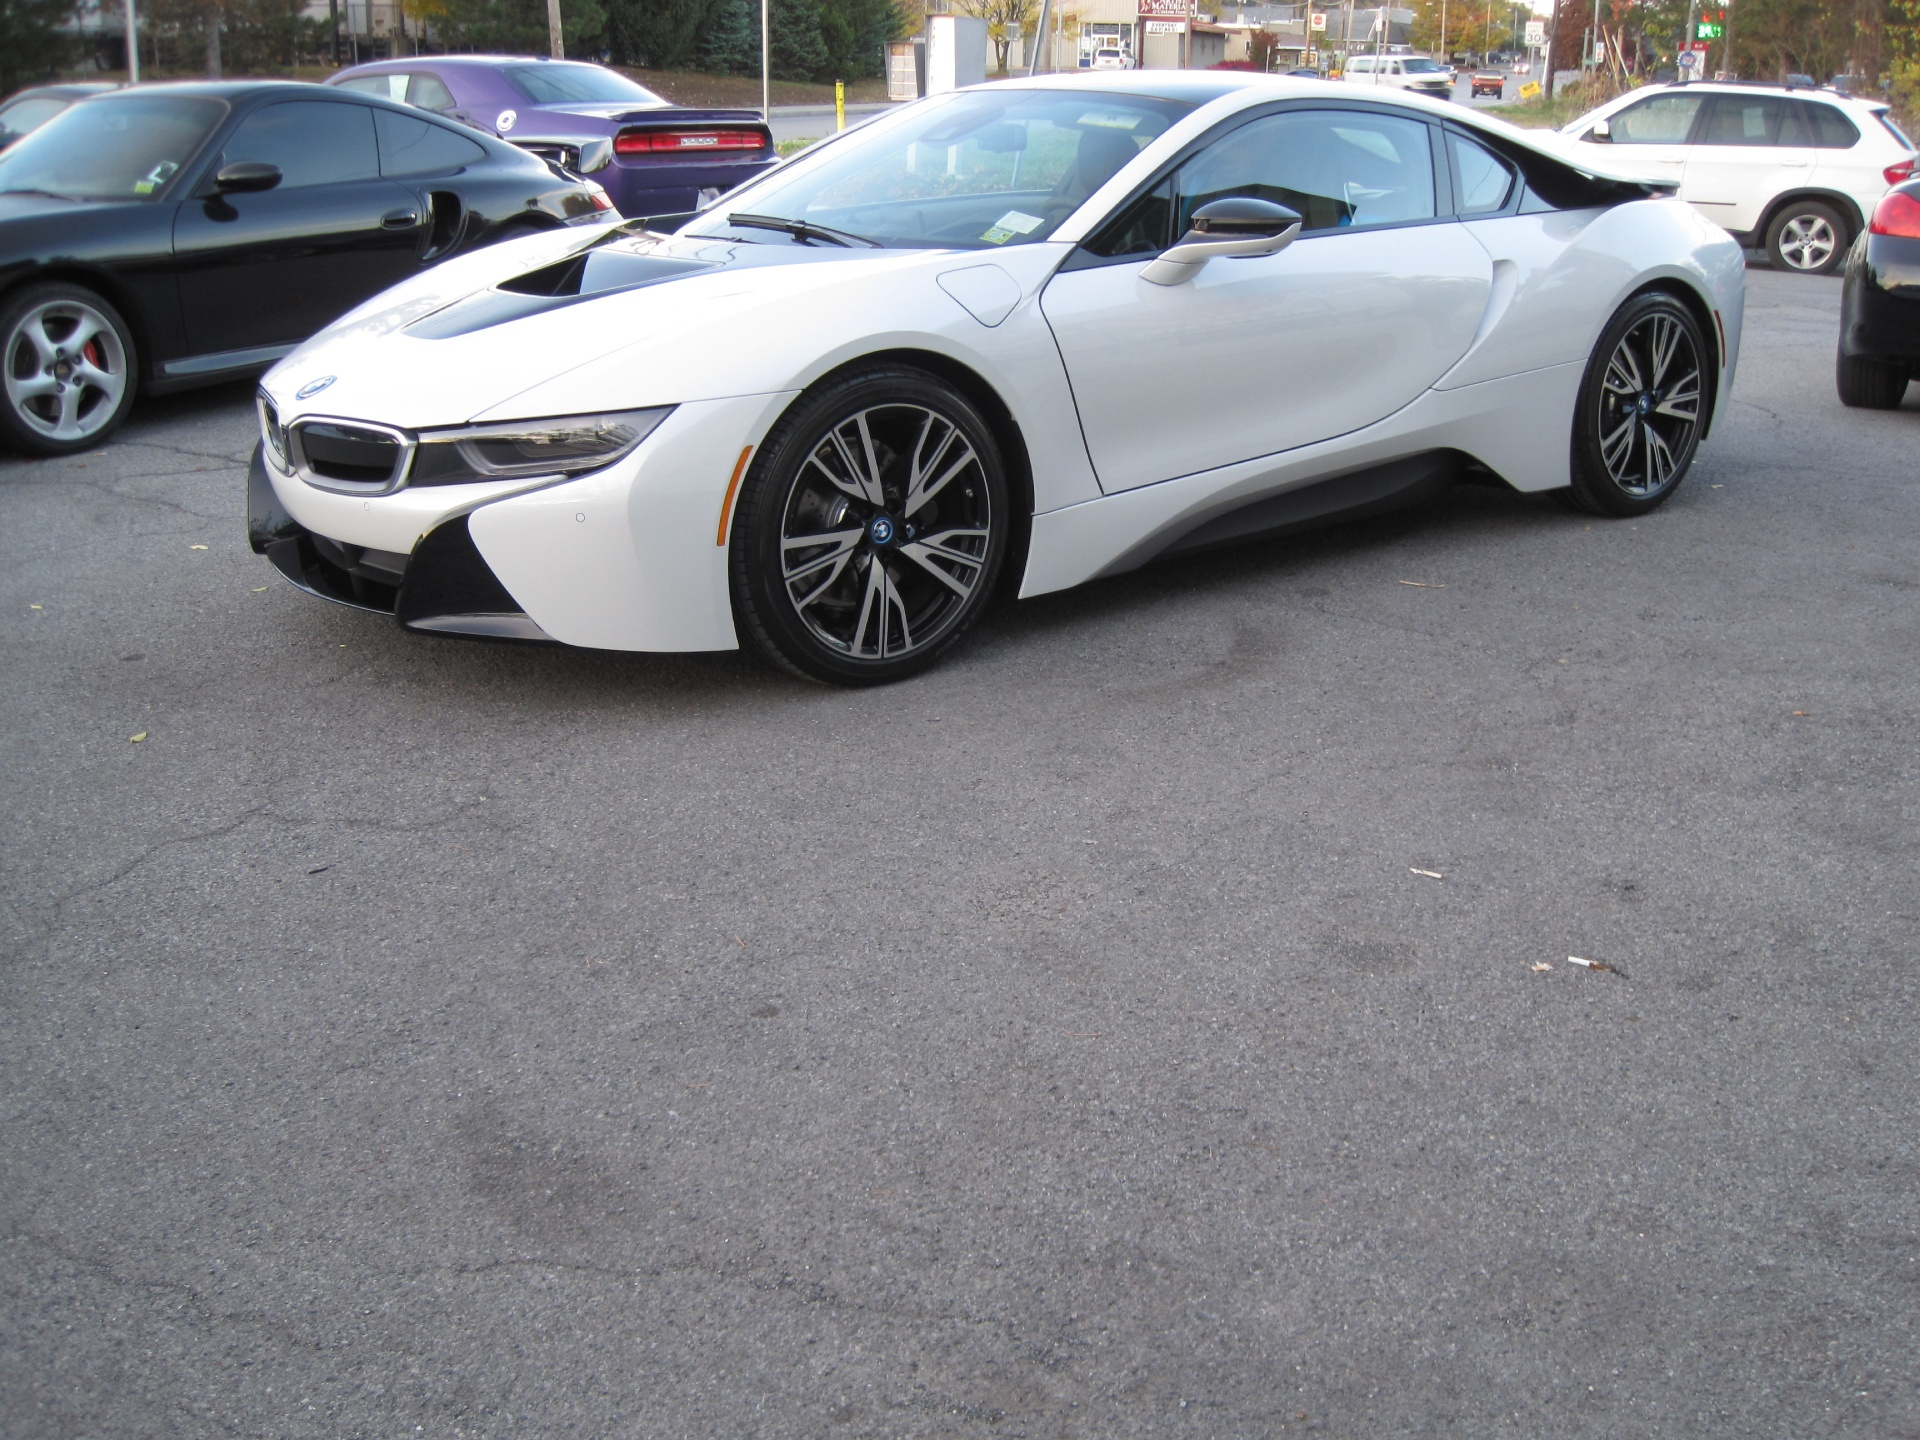 2014 Bmw I8 Tera World Package Crystal White Metallic With Frozen